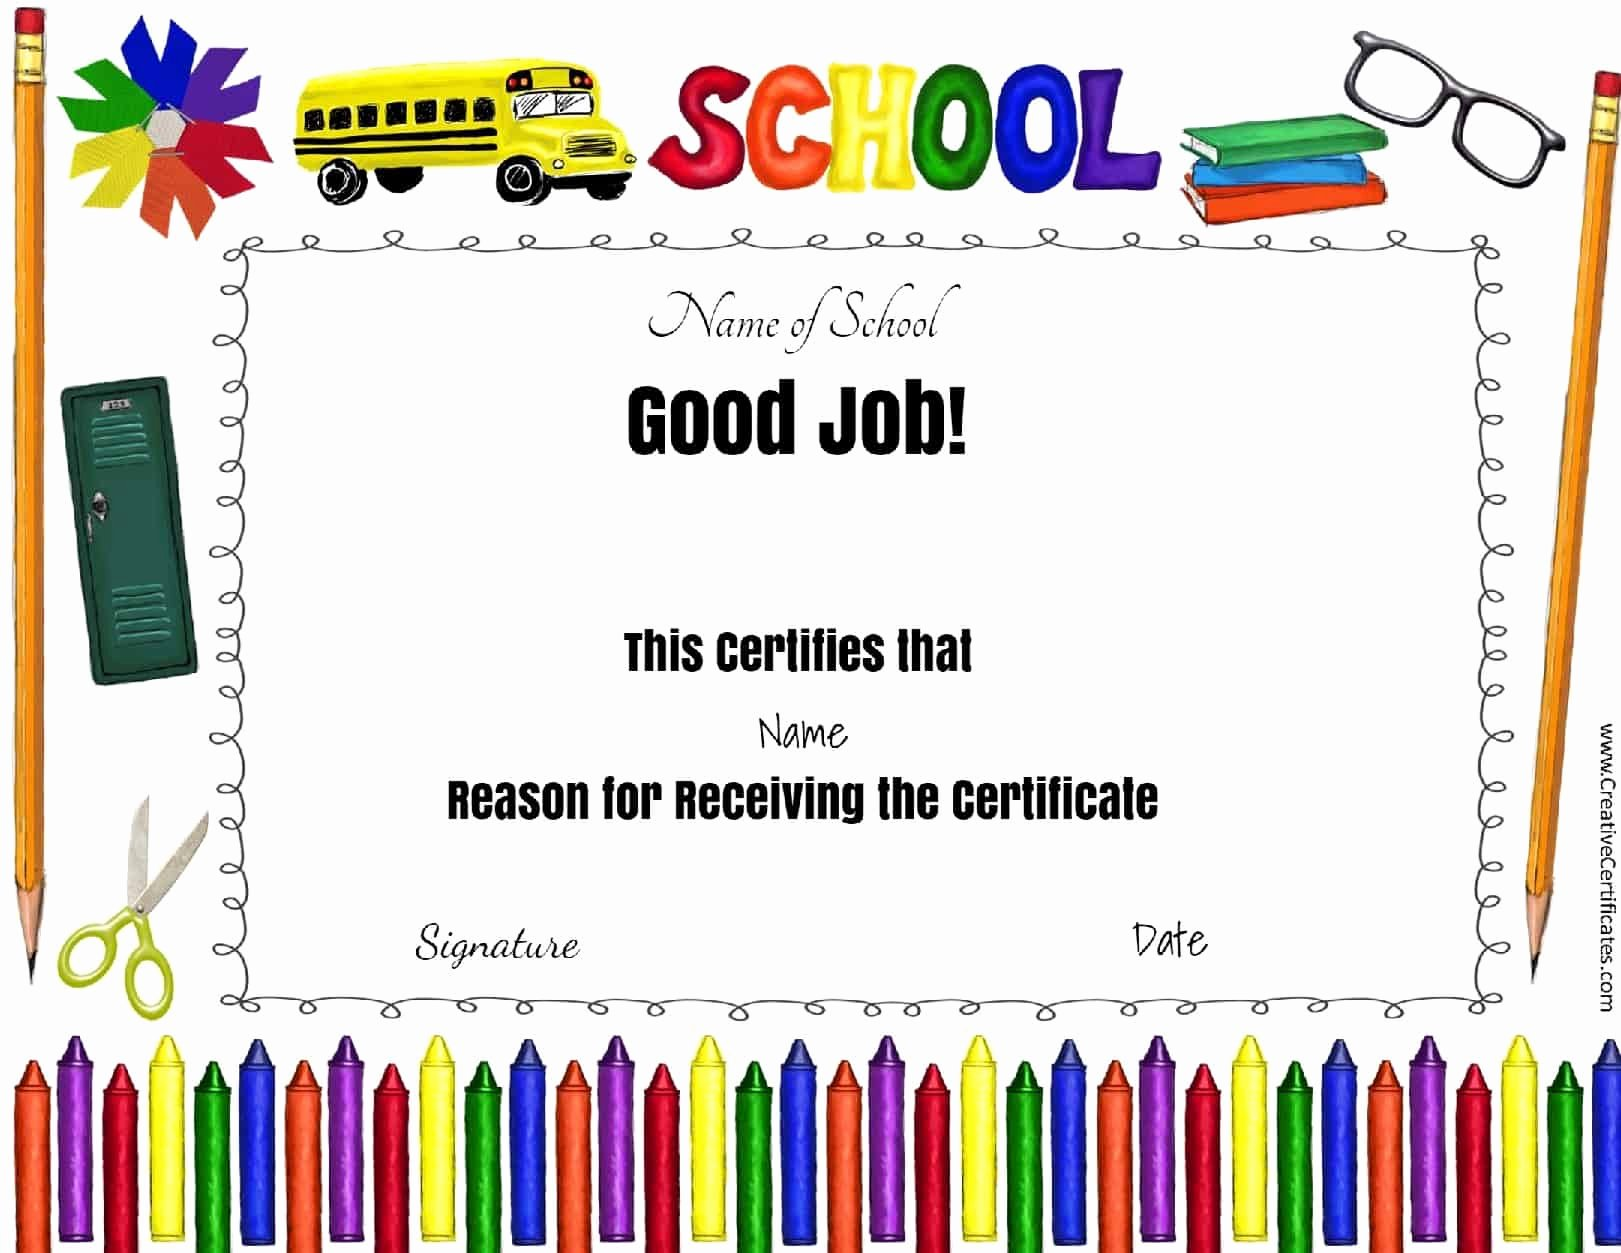 Teacher Of the Year Certificate Printable Elegant Free School Certificates & Awards